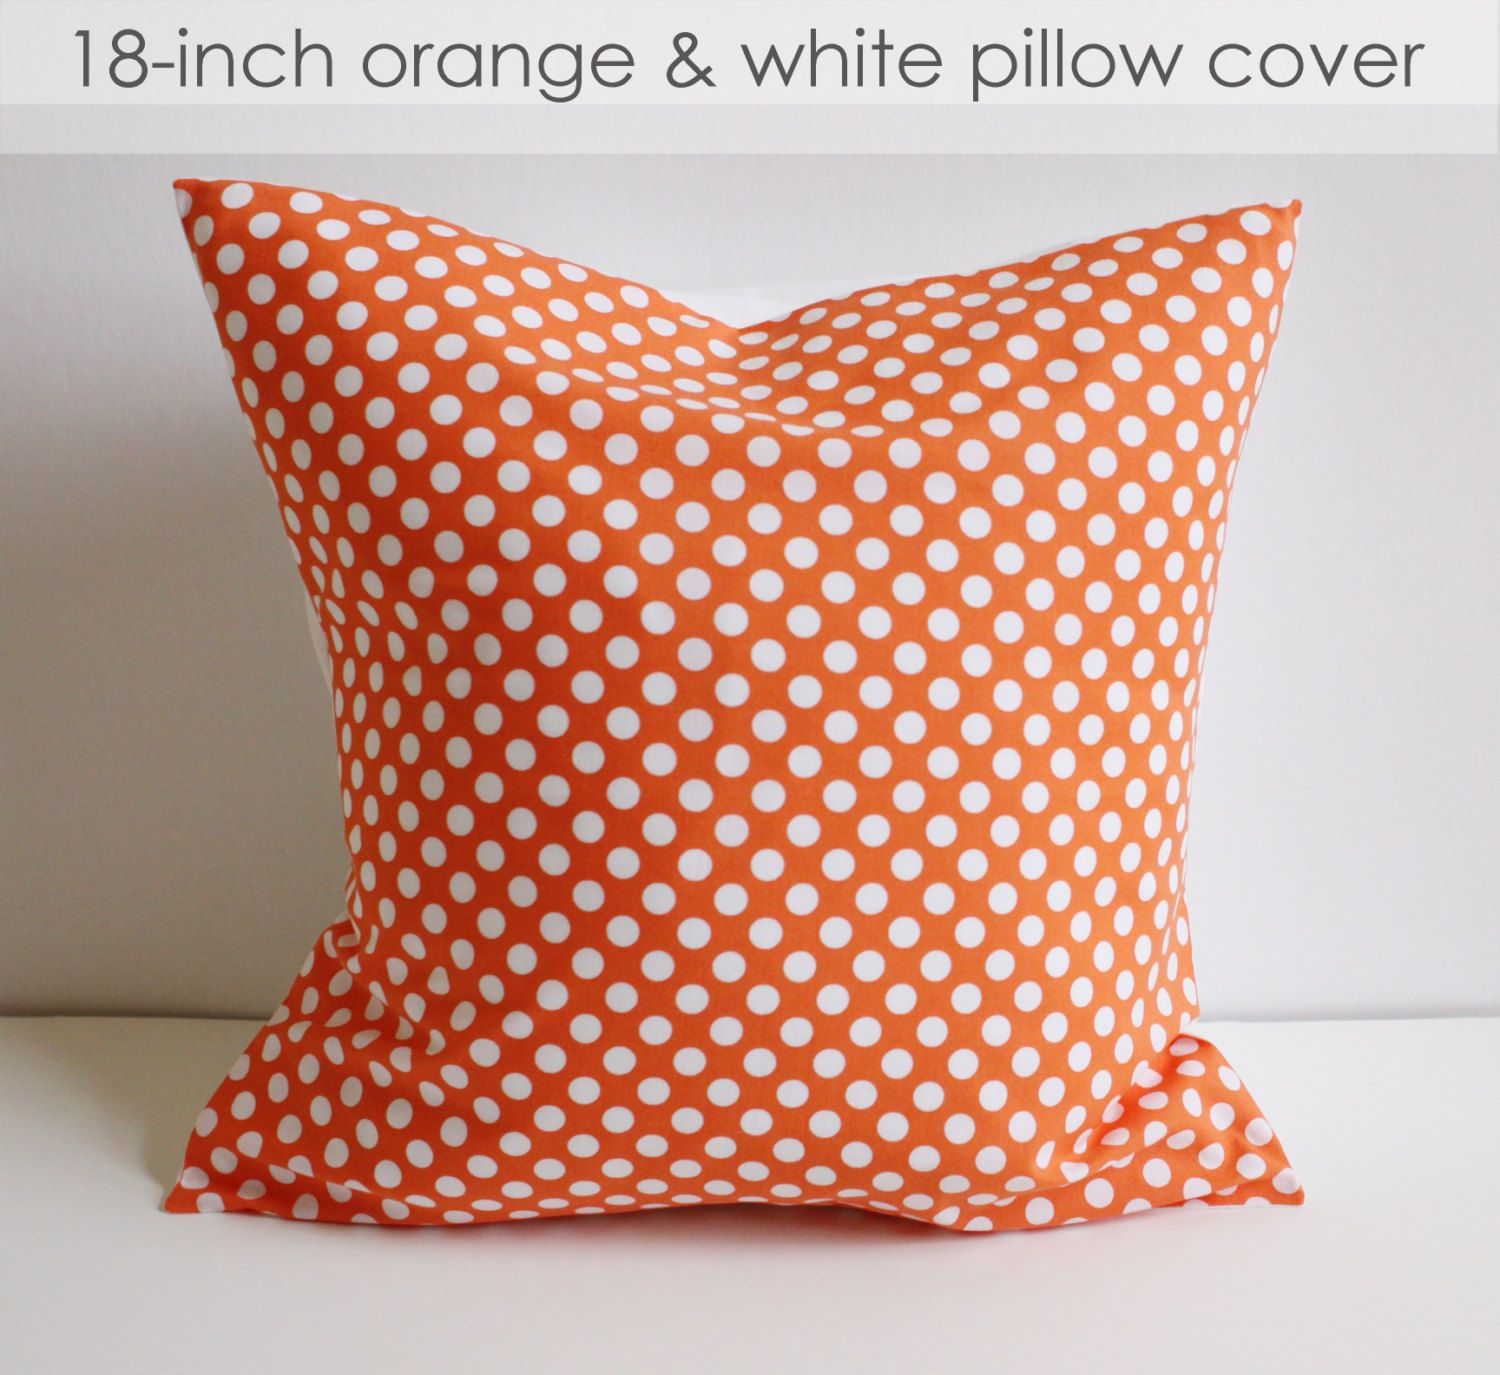 Polka Dot Rocking Chair Cushions Hanging Egg Zippay Orange And White Pillow Covers Set Of 2 25